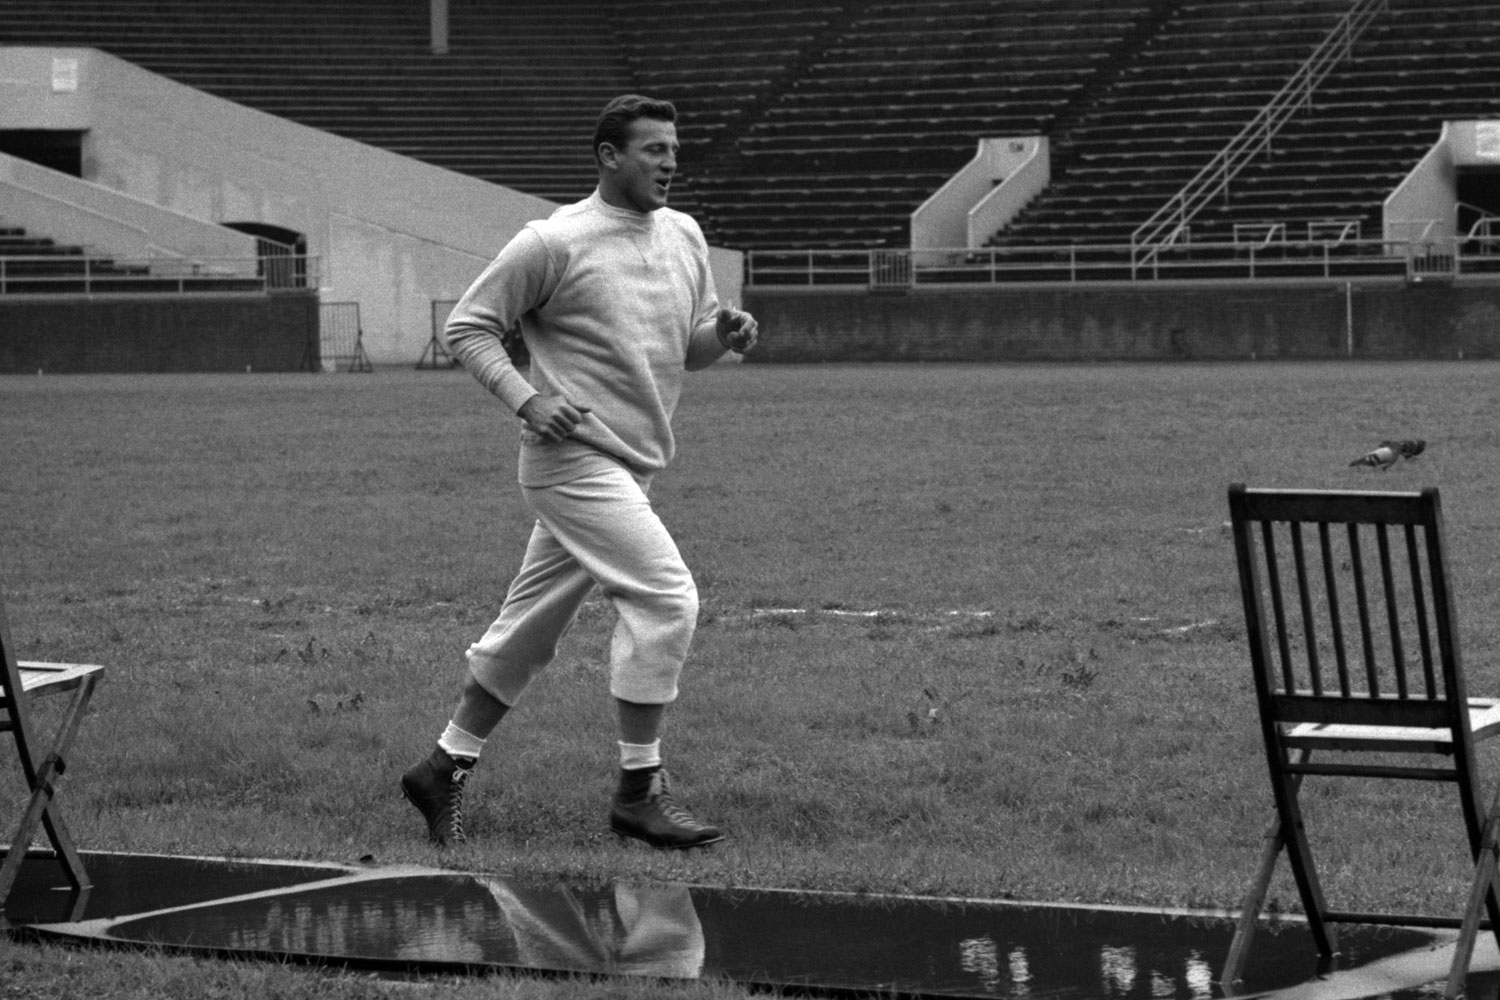 Philadelphia Eagles linebacker Chuck Bednarik jogs around the field prior to a practice in 1960 at Franklin Field in Philadelphia.